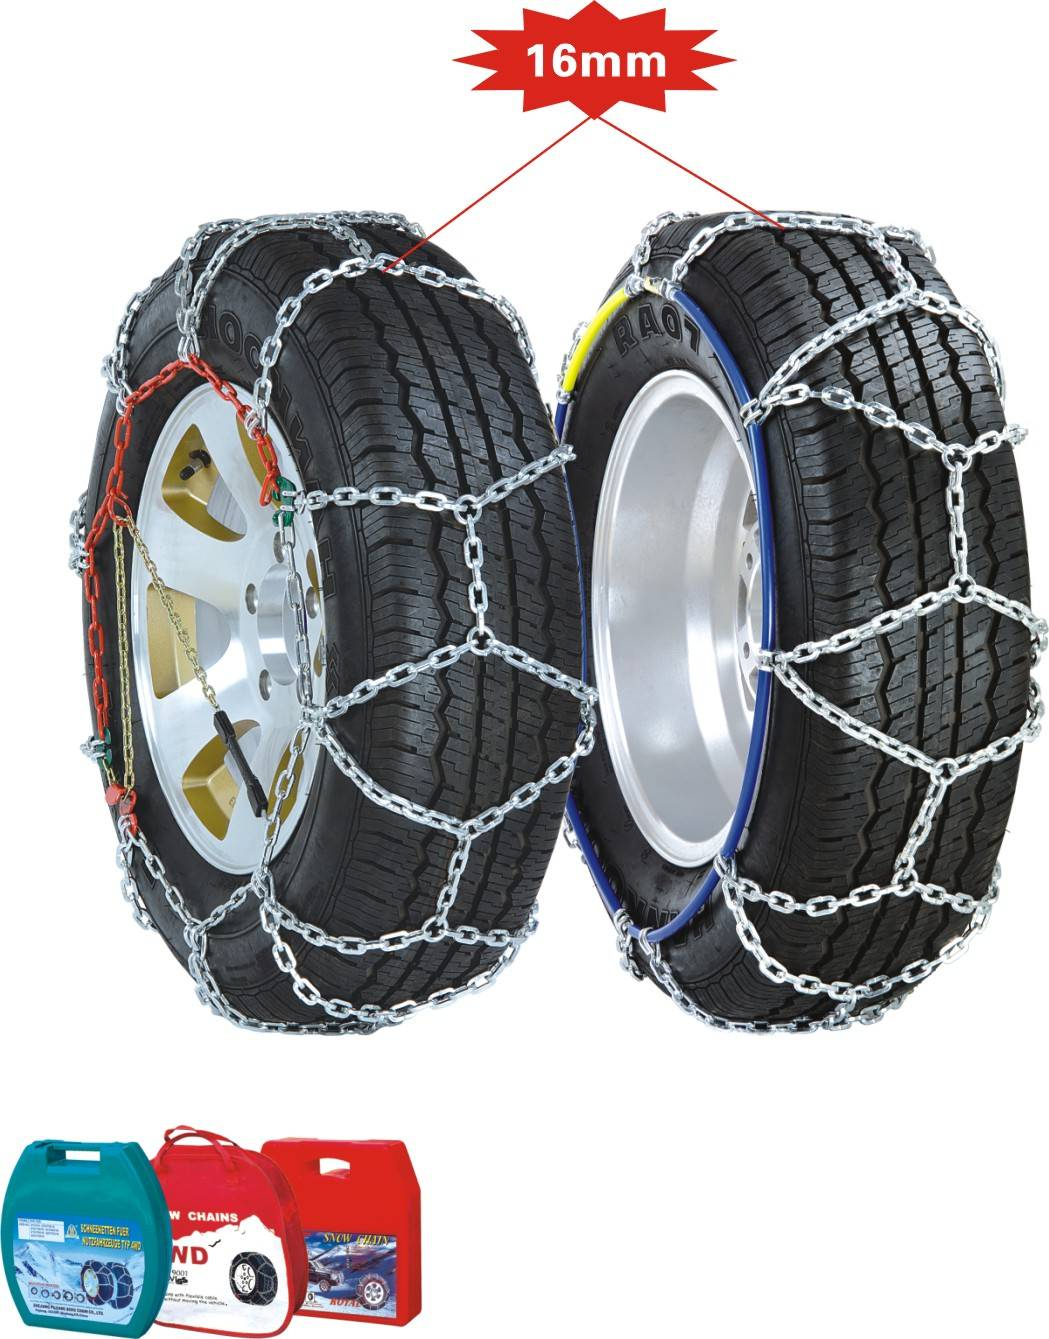 4WD series snow chain